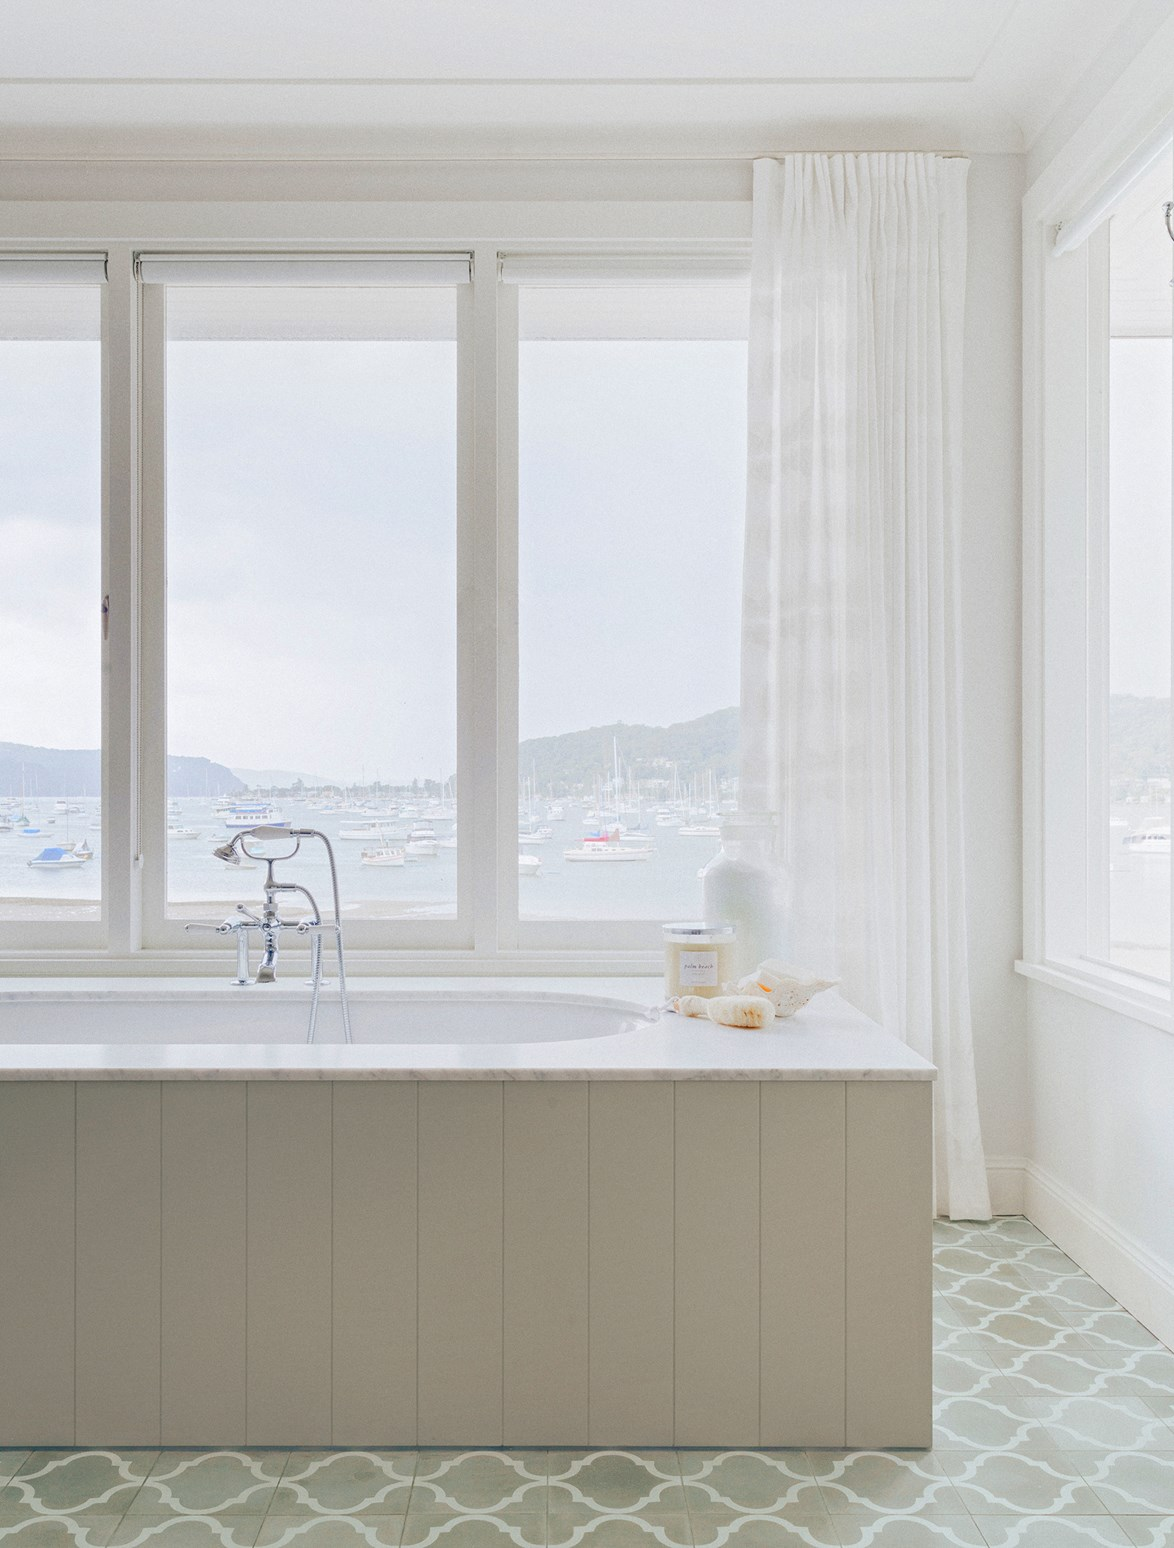 "Even if space isn't a concern – as is the case with this bathroom in a [hamptons style beach house](https://www.homestolove.com.au/hamptons-style-beach-house-renovation-2380|target=""_blank"") – a built-in bath can still steal the show. This soaking tub commands the room while custom panelling blends in perfectly with the home's coastal look. *Photo: Felix Forest / Styling: Lucy McCabe / Story: Belle*"